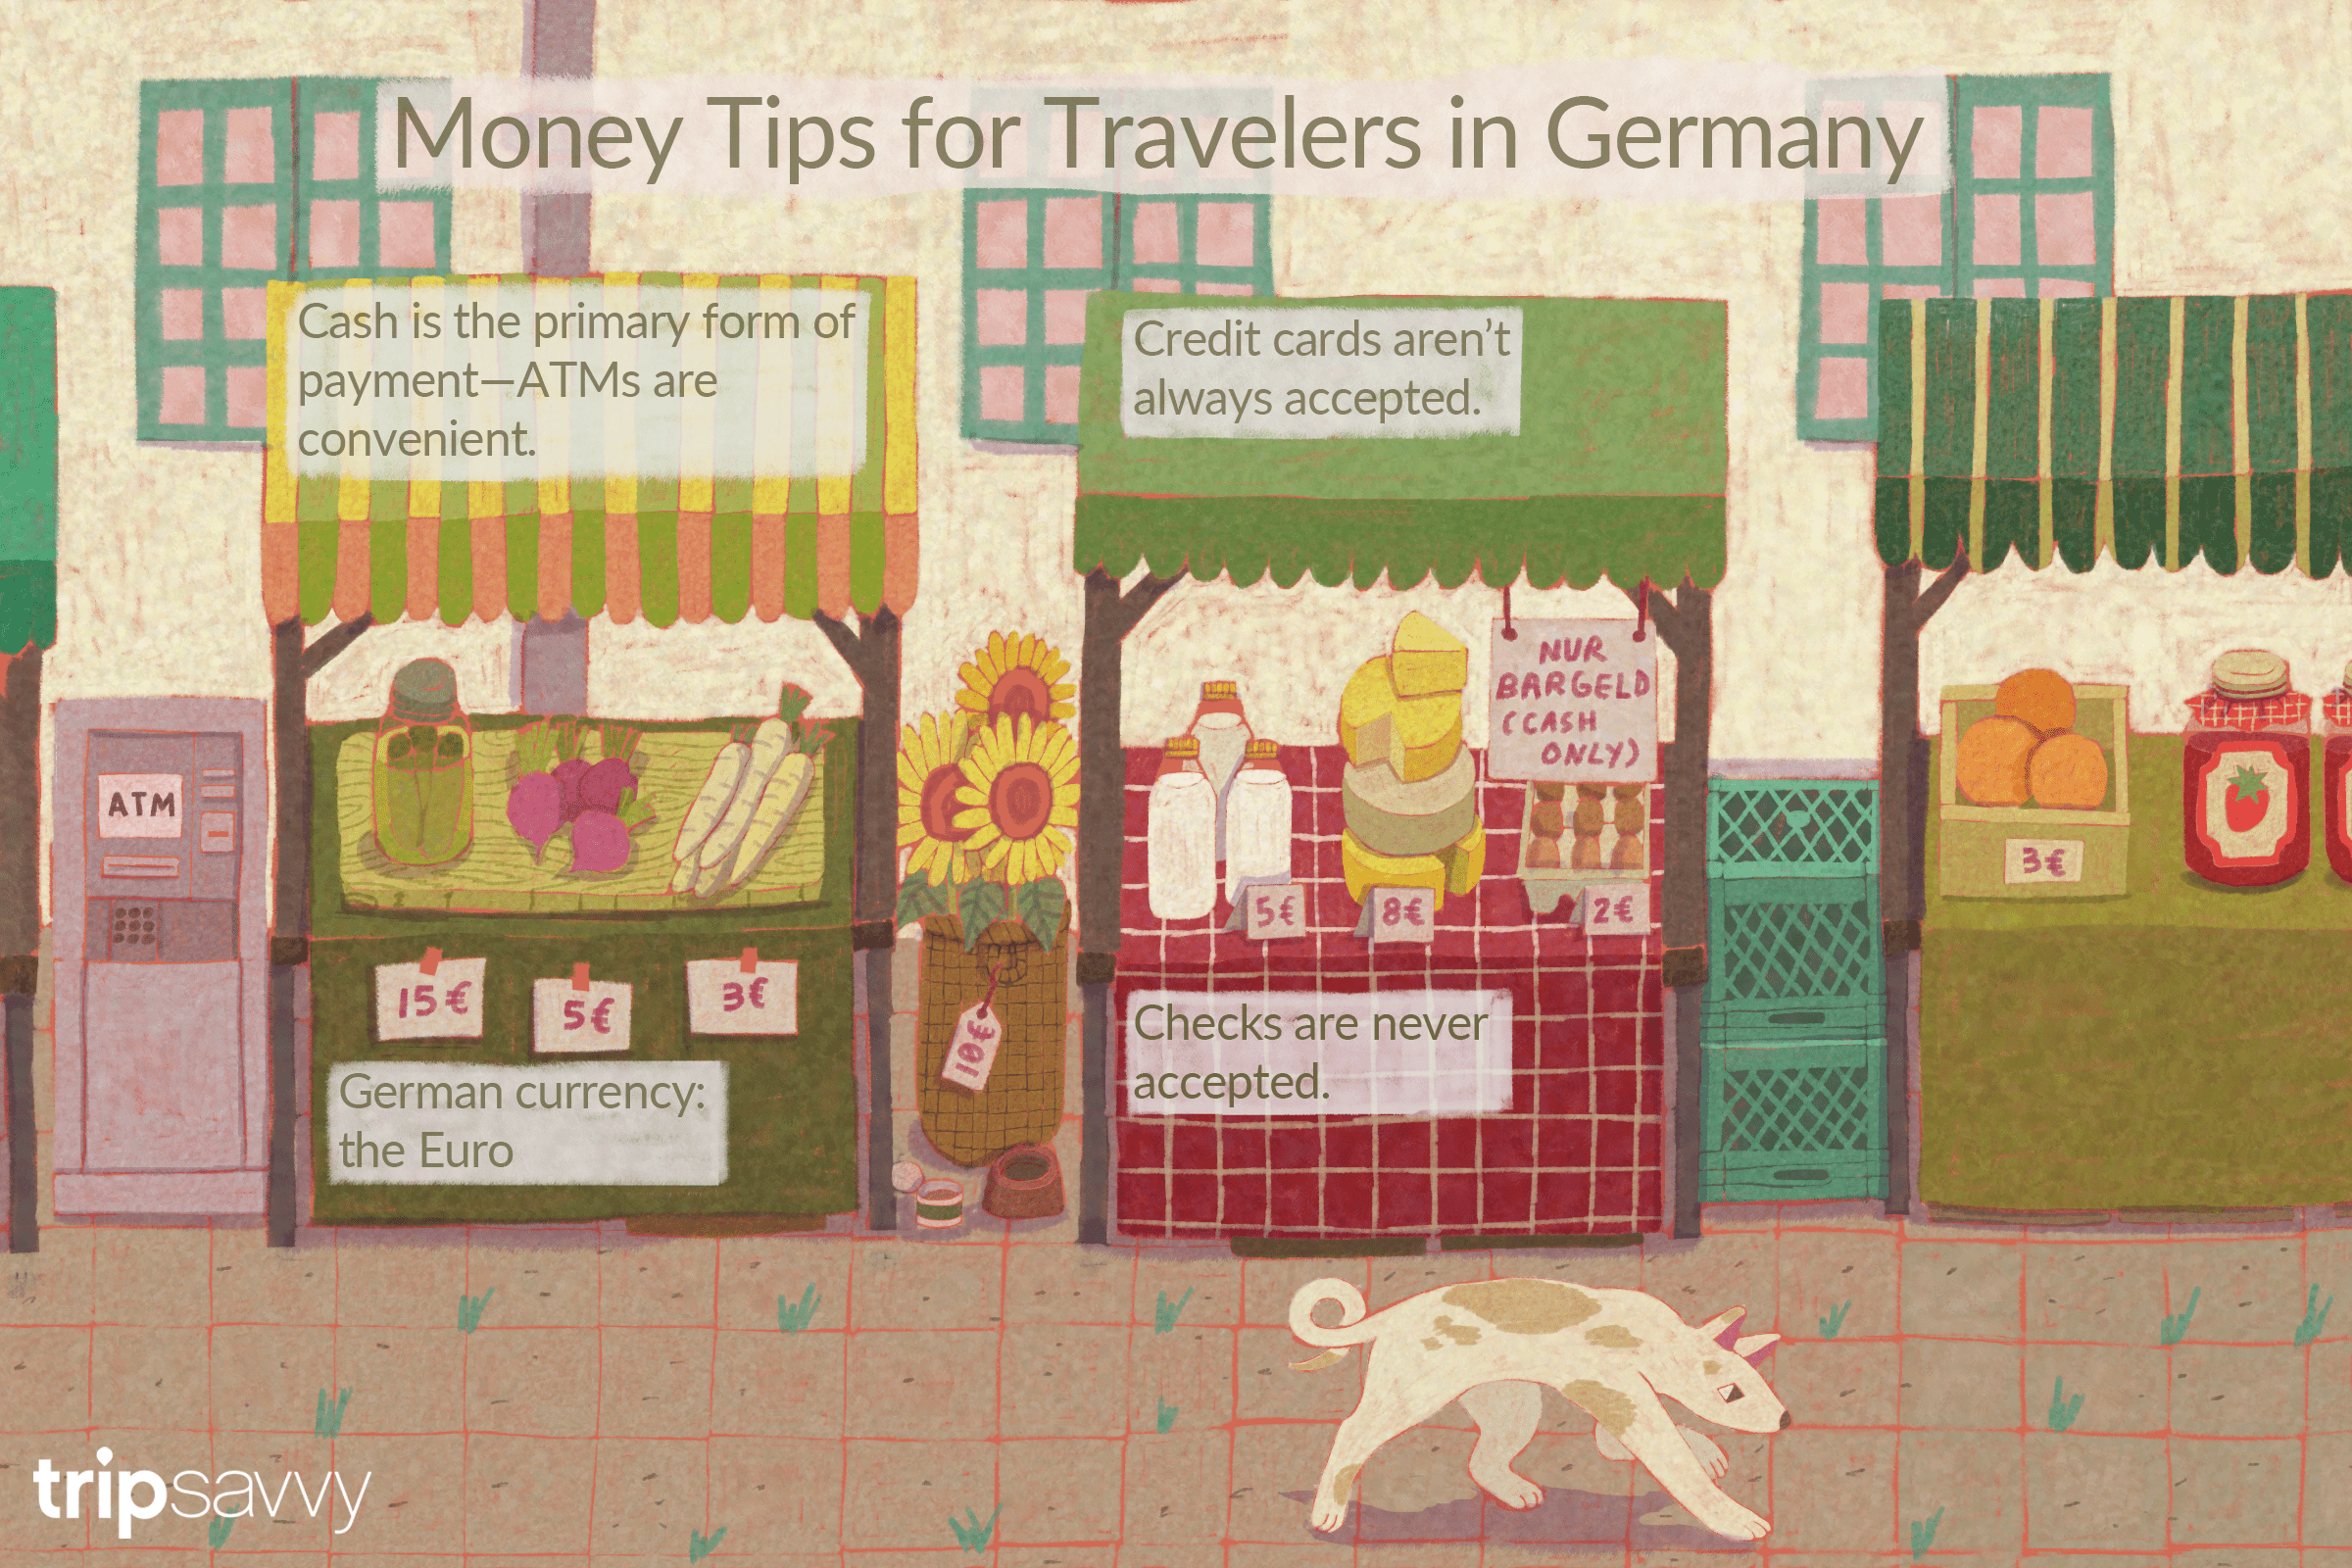 illustration of a market in Germany with tips from the article